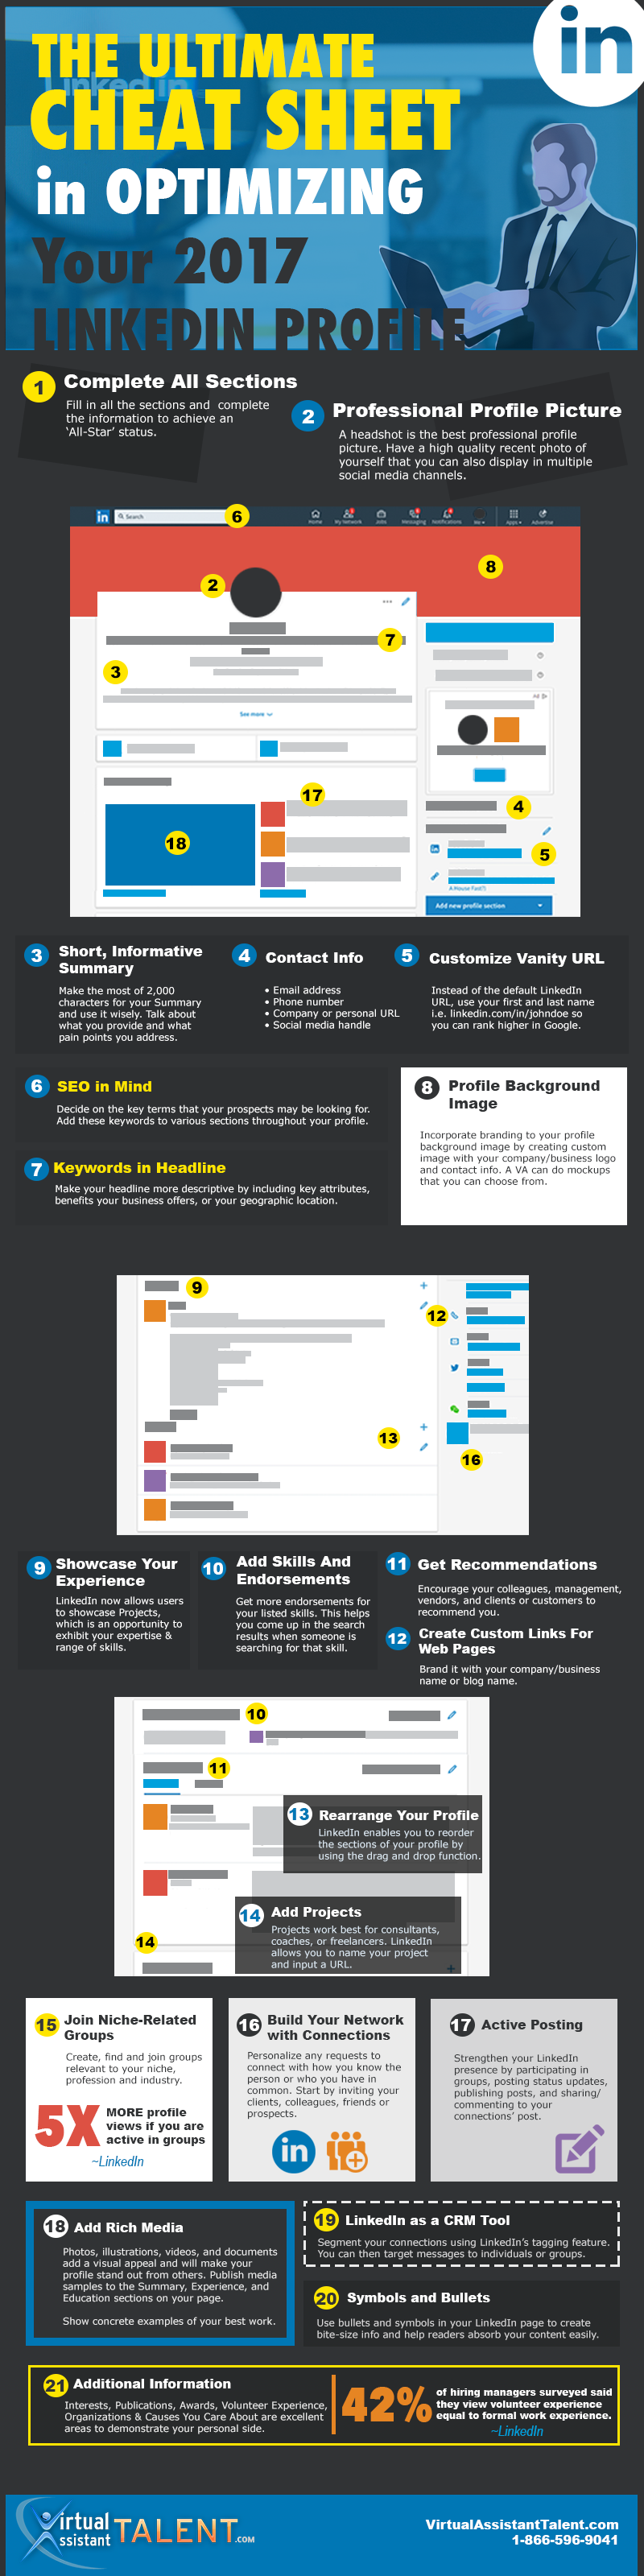 The Ultimate Cheat Sheet in Optimizing Your LinkedIn Profile in 2017